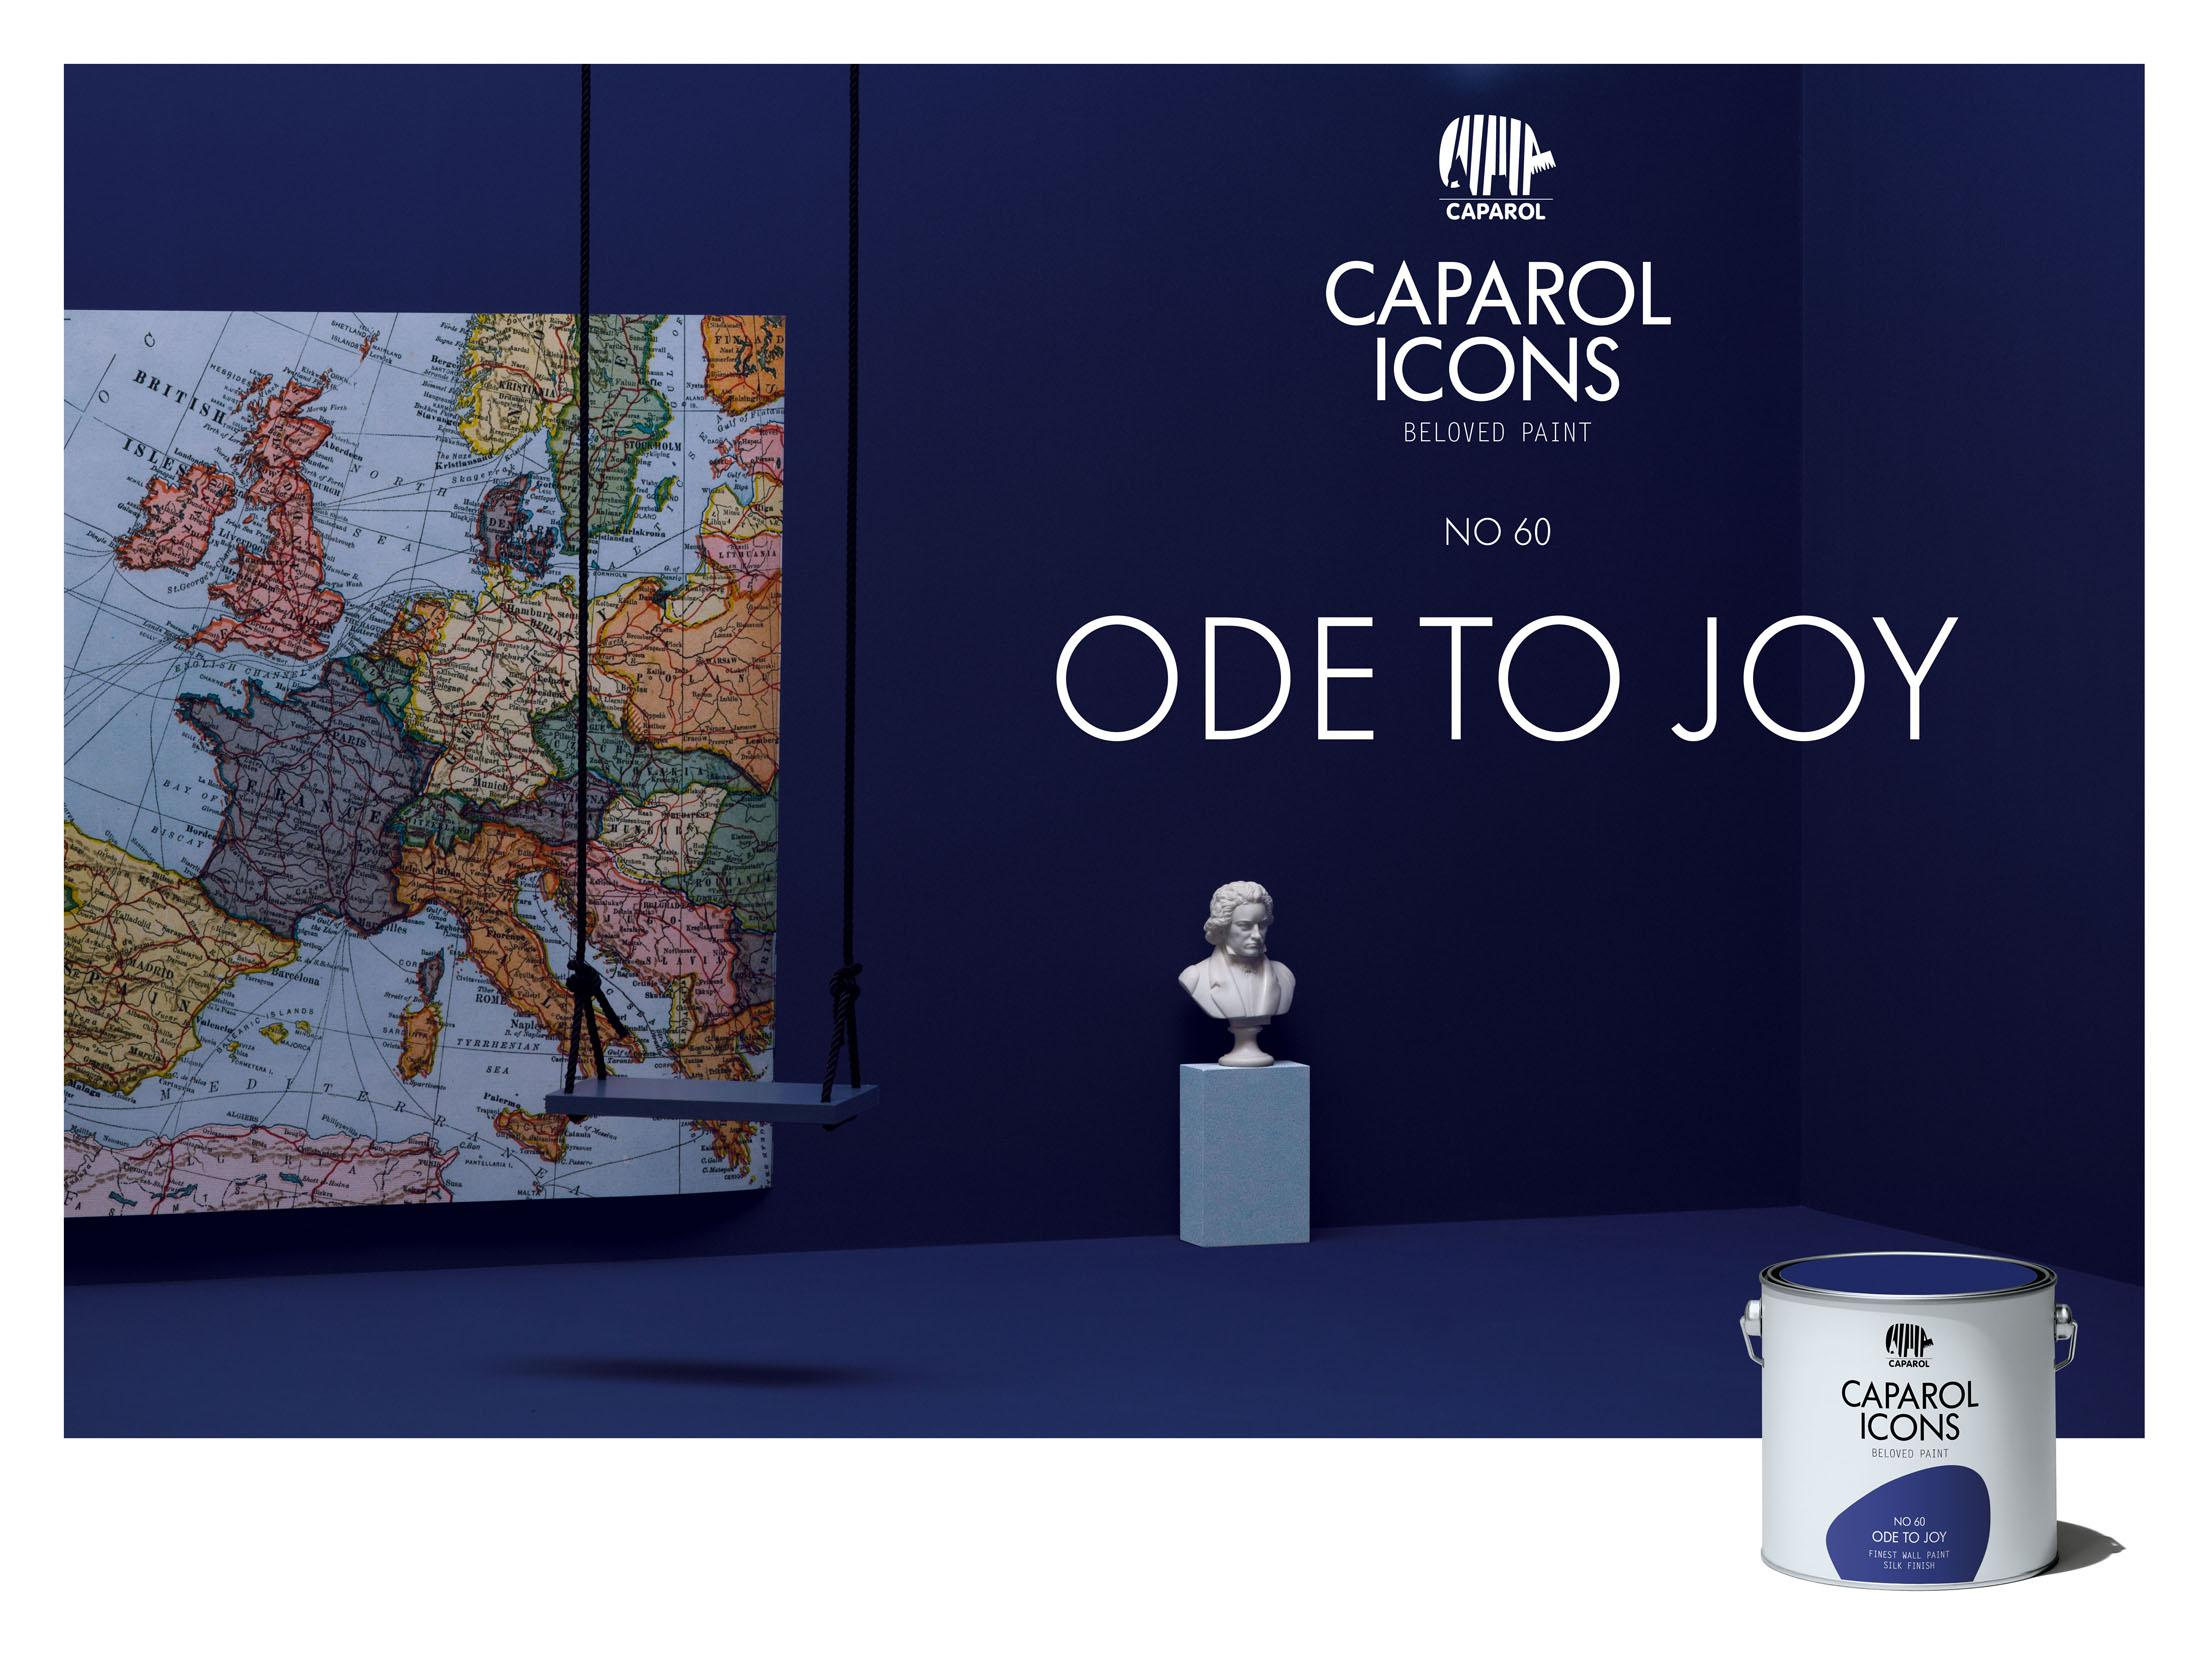 CAPAROL ICONS – Beloved Paint - Special Mention Luxury